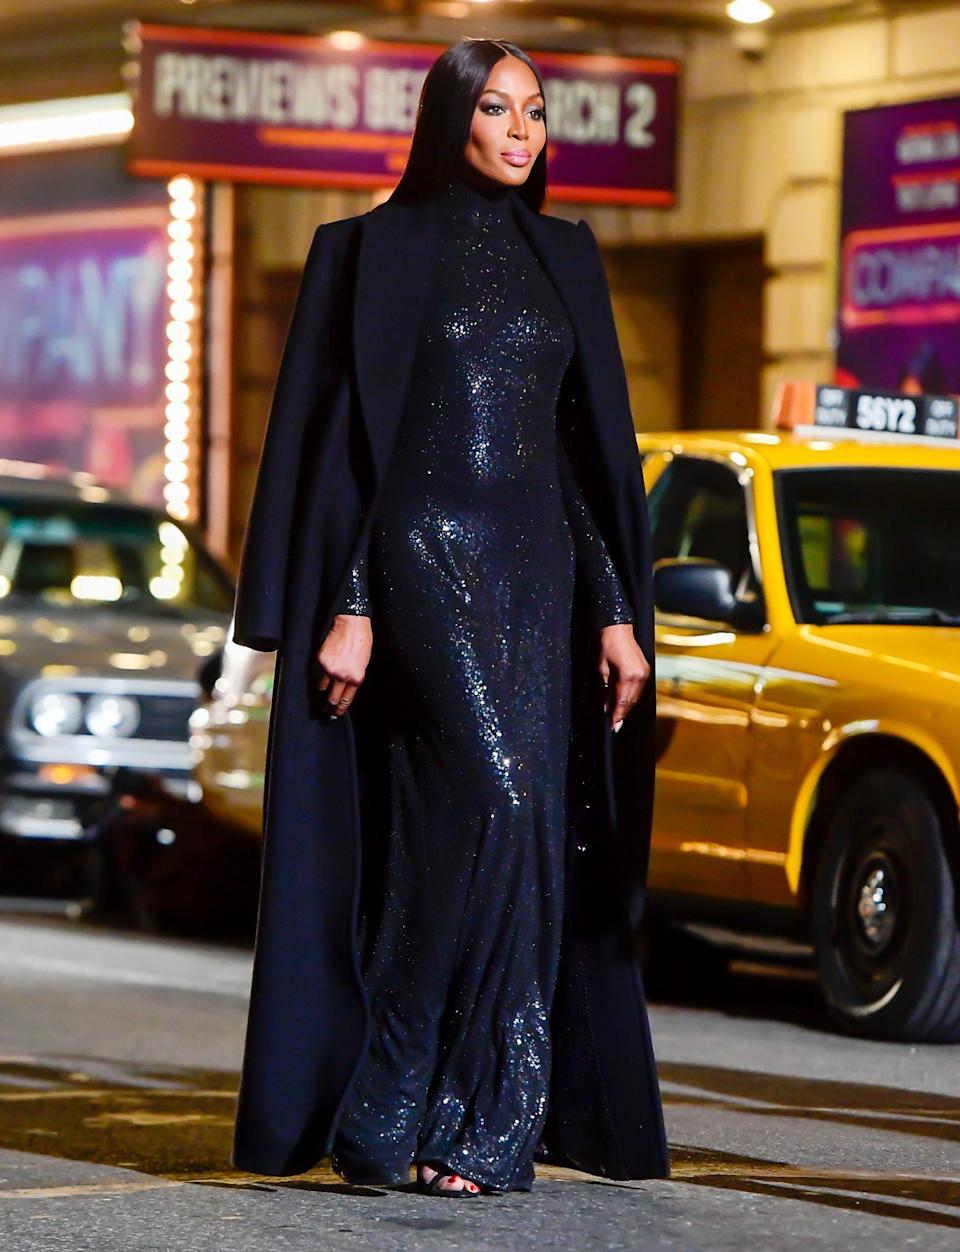 <p>Naomi Campbell steals the spotlight as she walks through Times Square in the Michael Kors fashion show on Thursday in N.Y.C.</p>